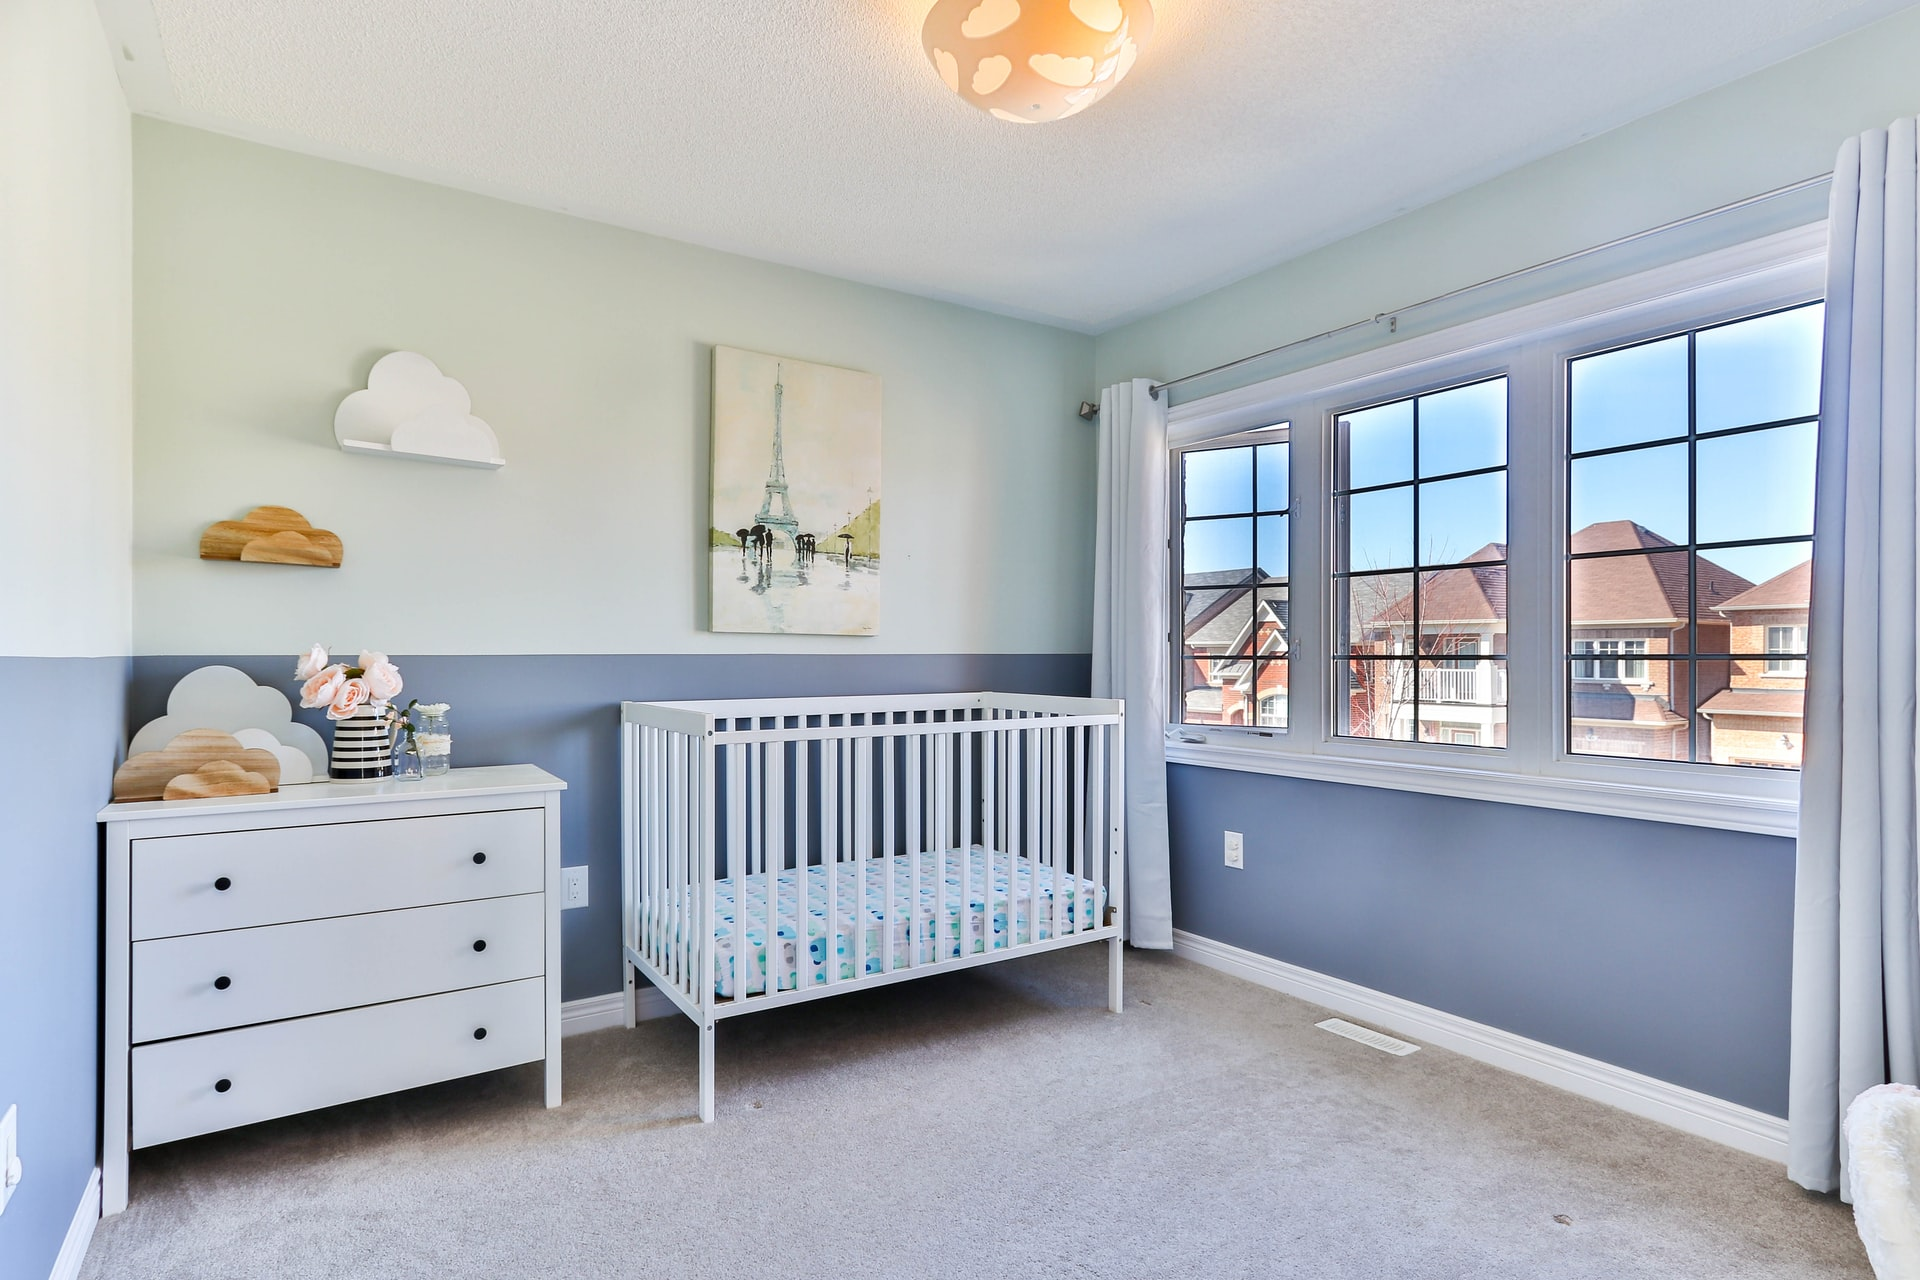 How to clean the air in your home for your child